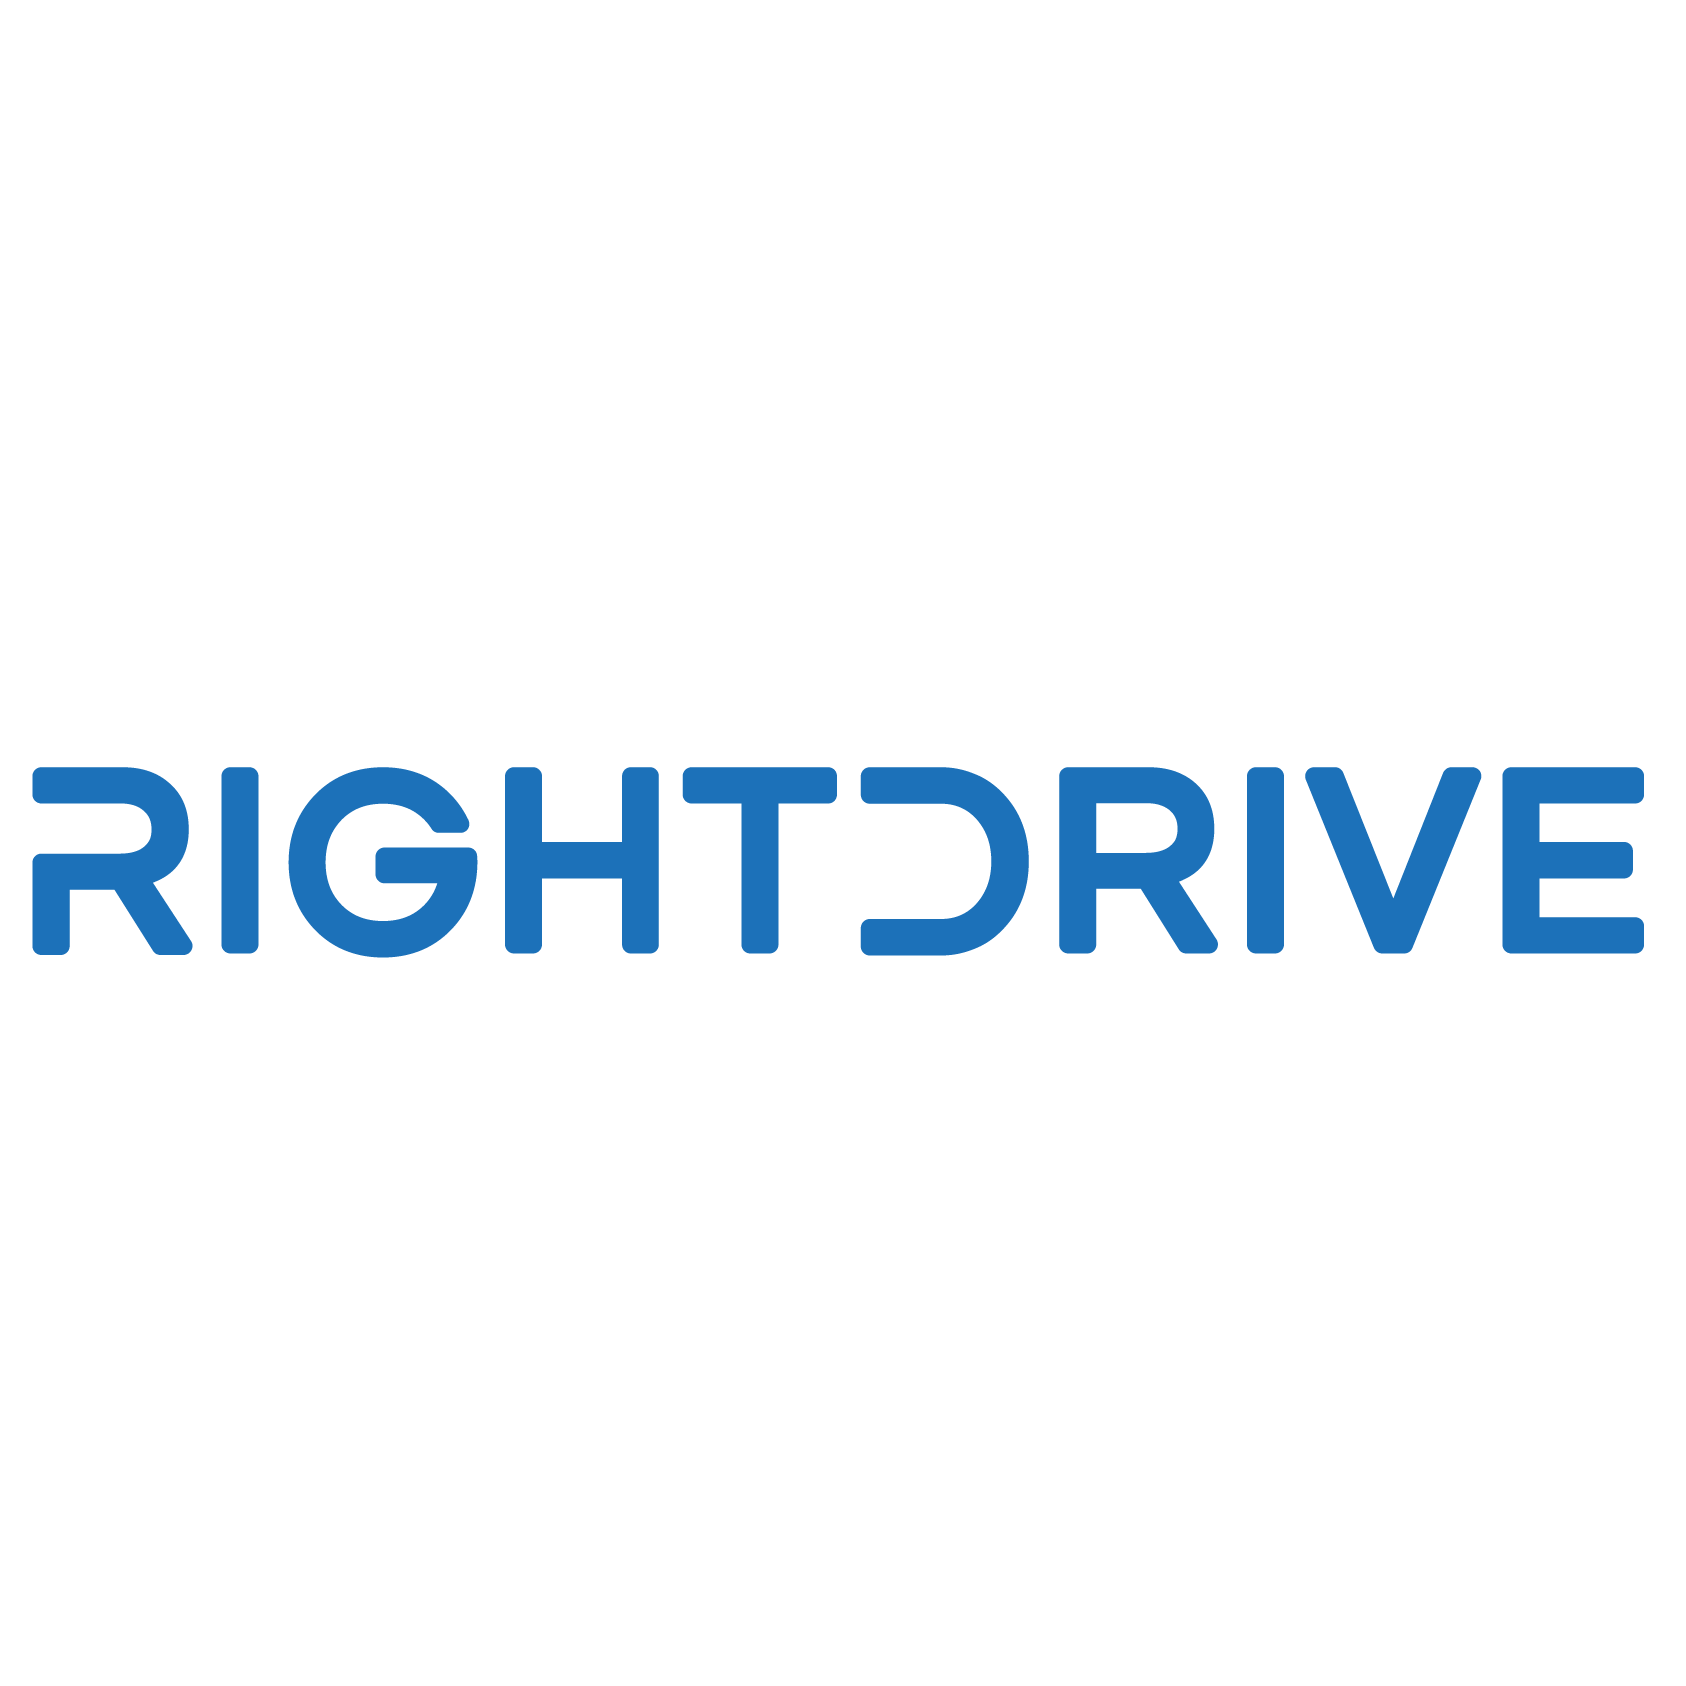 RightDrive